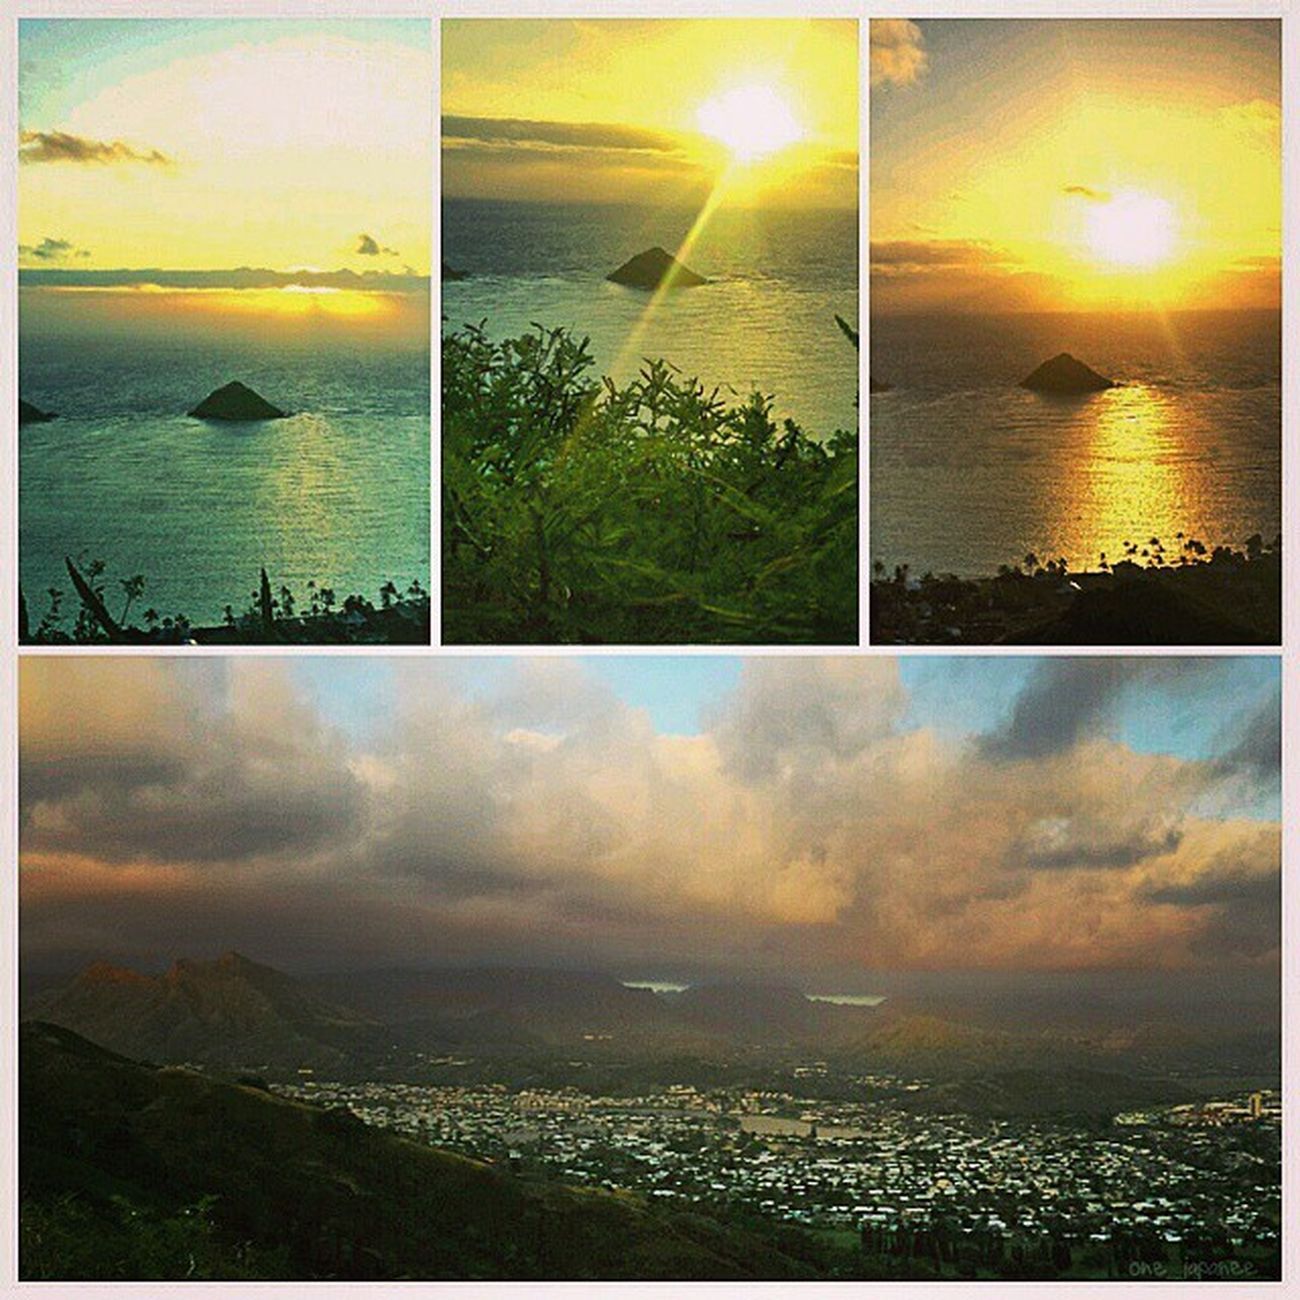 This mornings hike 3•28•15 Sunrise Hike Lanikaipillboxes Twinislands Mokes Lanikai  Kailua  967🌴4 Oahu Hawaii HiLife Luckywelivehi VentureHi Fitlife Cloudy Mylife ExploreHawaii Exerciseyoself Feeltheburn GodIsGood Latepost Koolaumountains Workout InstaFrame Samsunggalaxy4